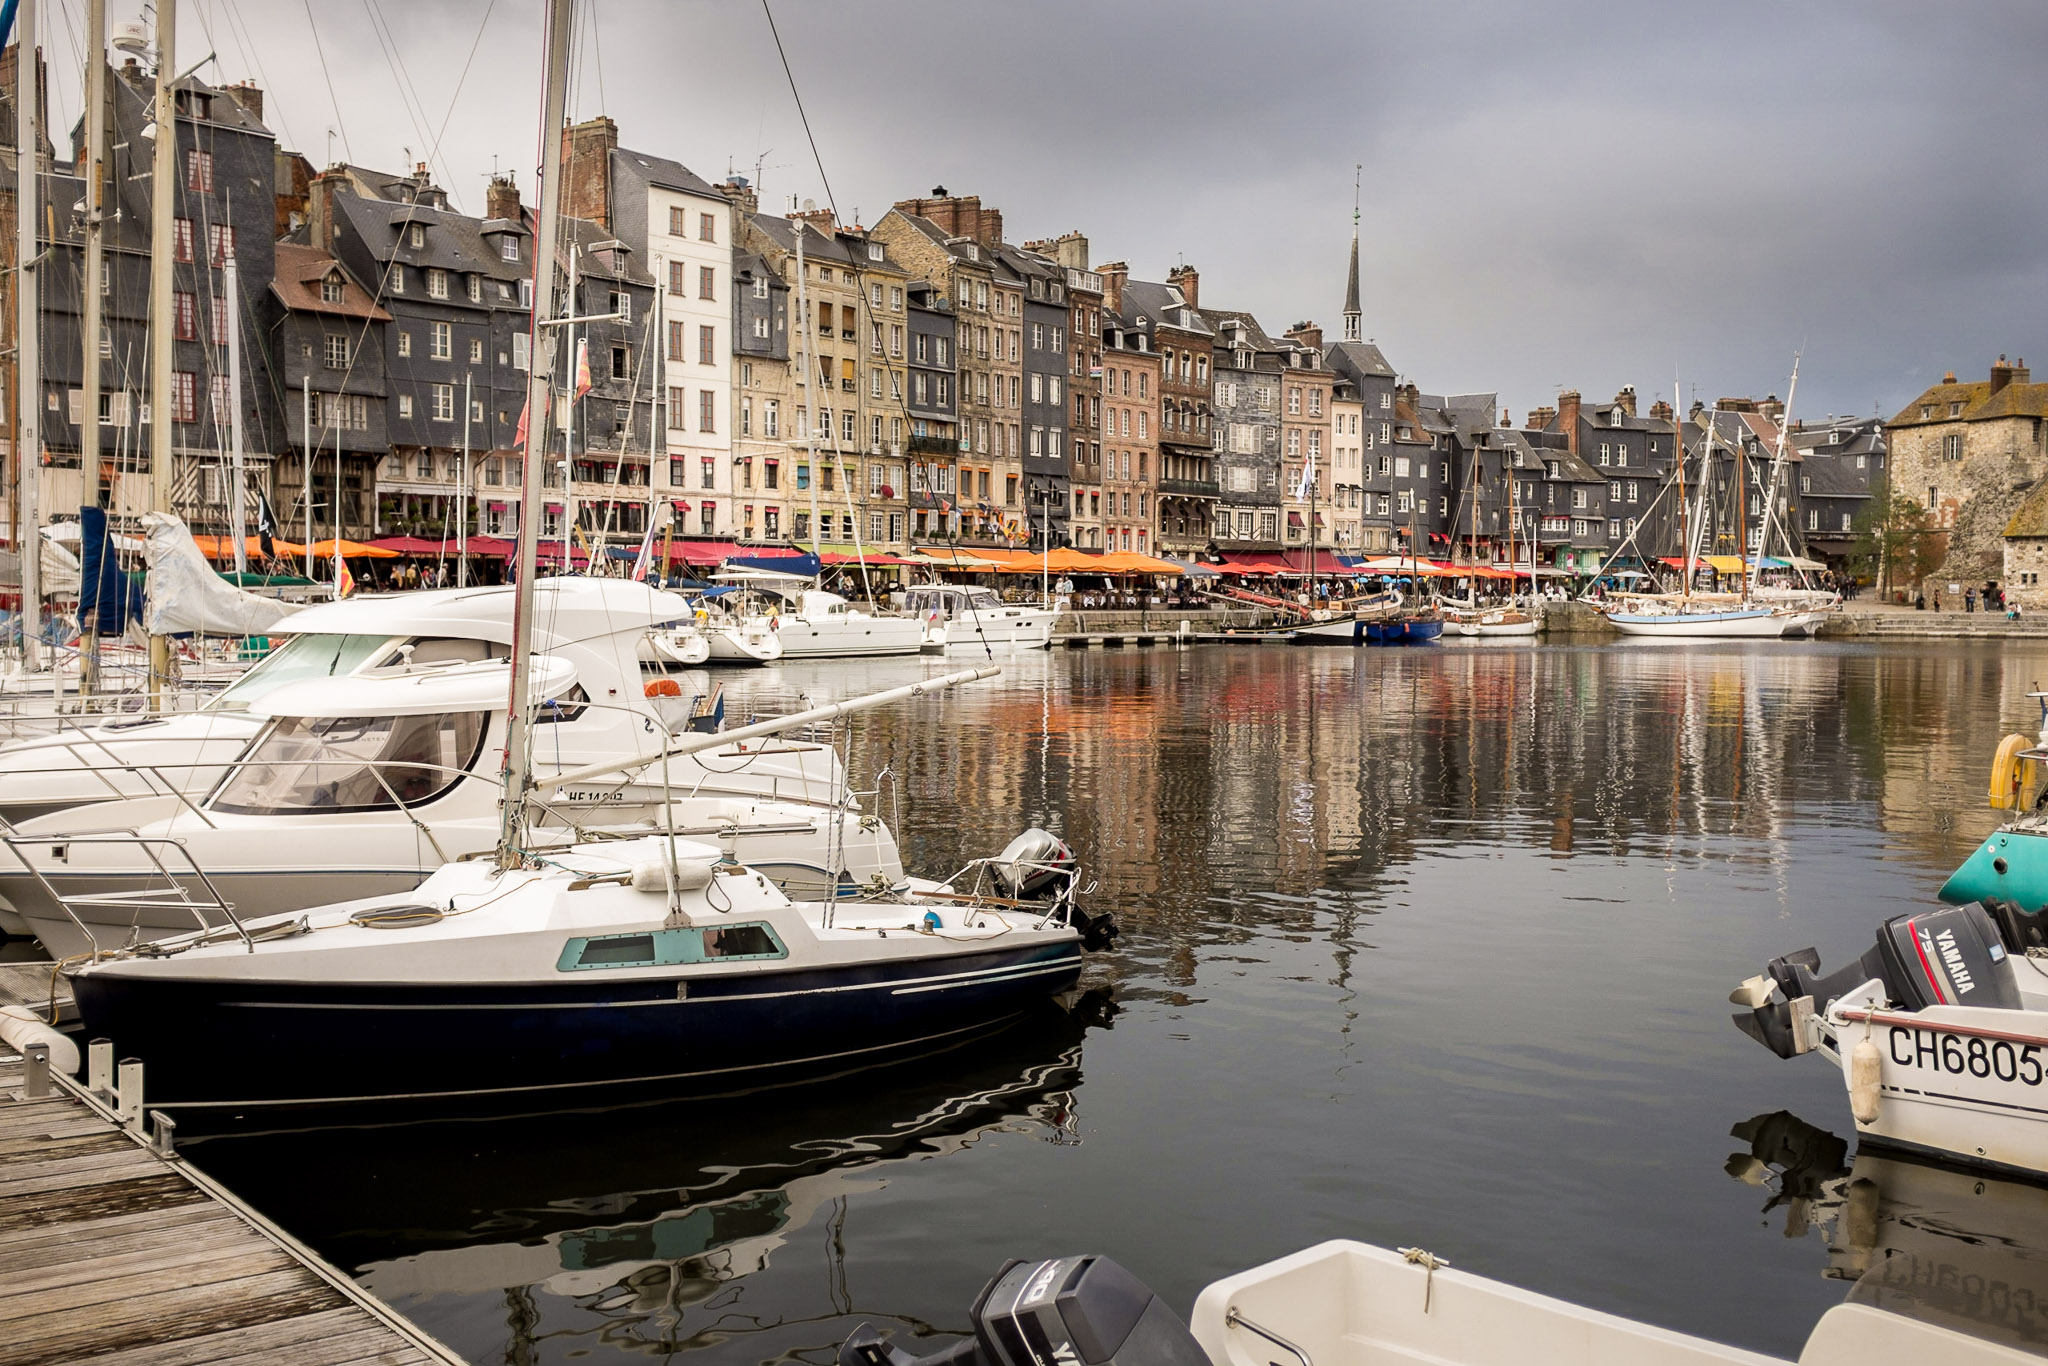 Reflections on the water of the Old Harbour in Honfleur, Normandy, France Fujifilm X100S, 1/1000 sec, ƒ2, 23mm (34 FF Equivalent), ISO200